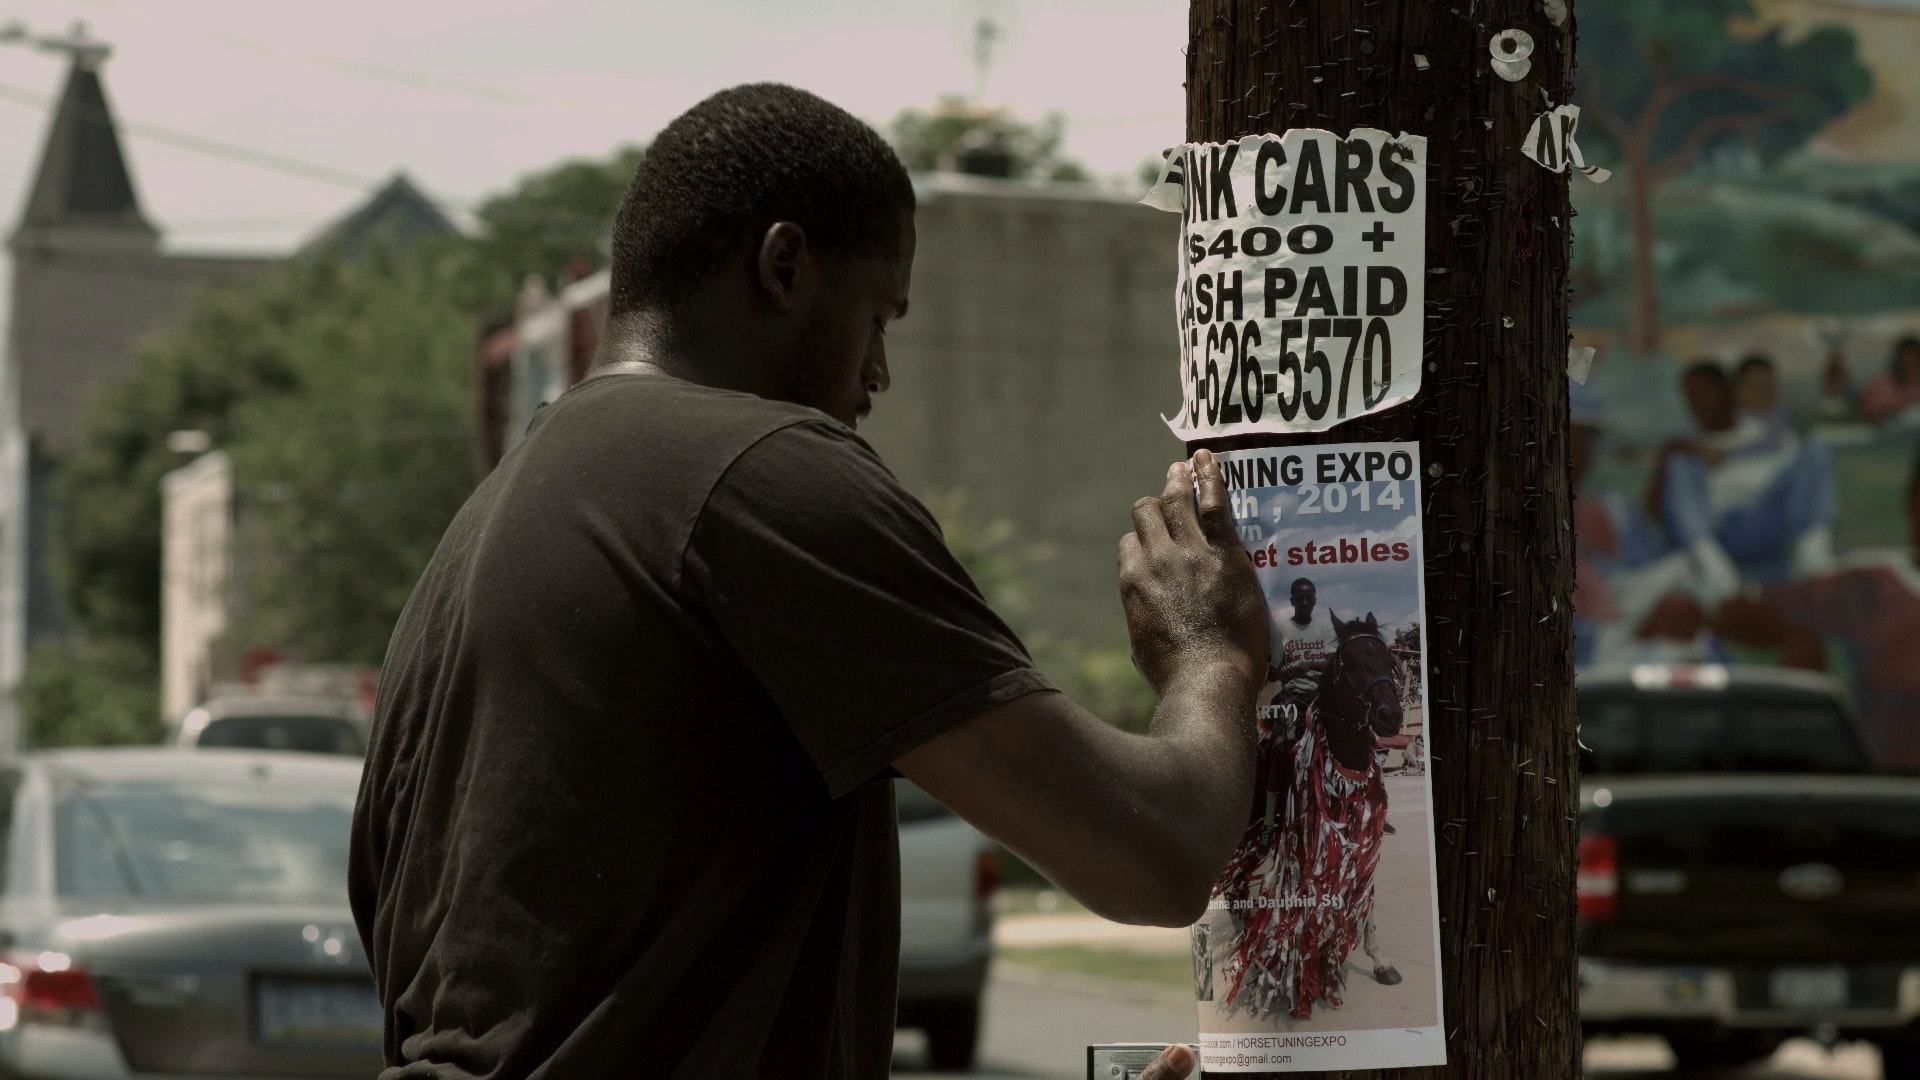 A rider pins a poster for the Horse Day event to a utility pole.